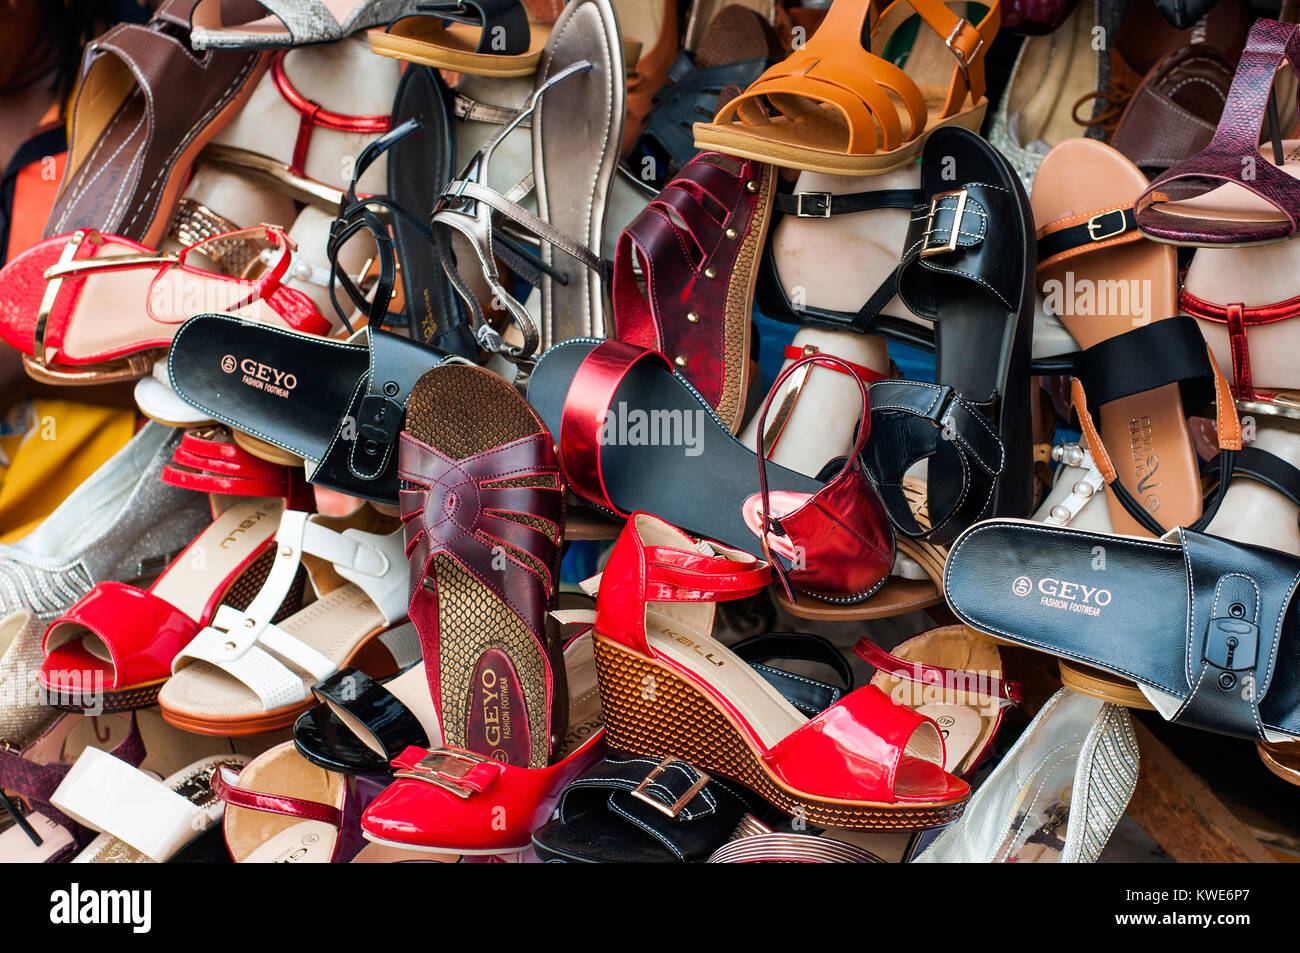 1bc35df42e8 Display of shoes on sale